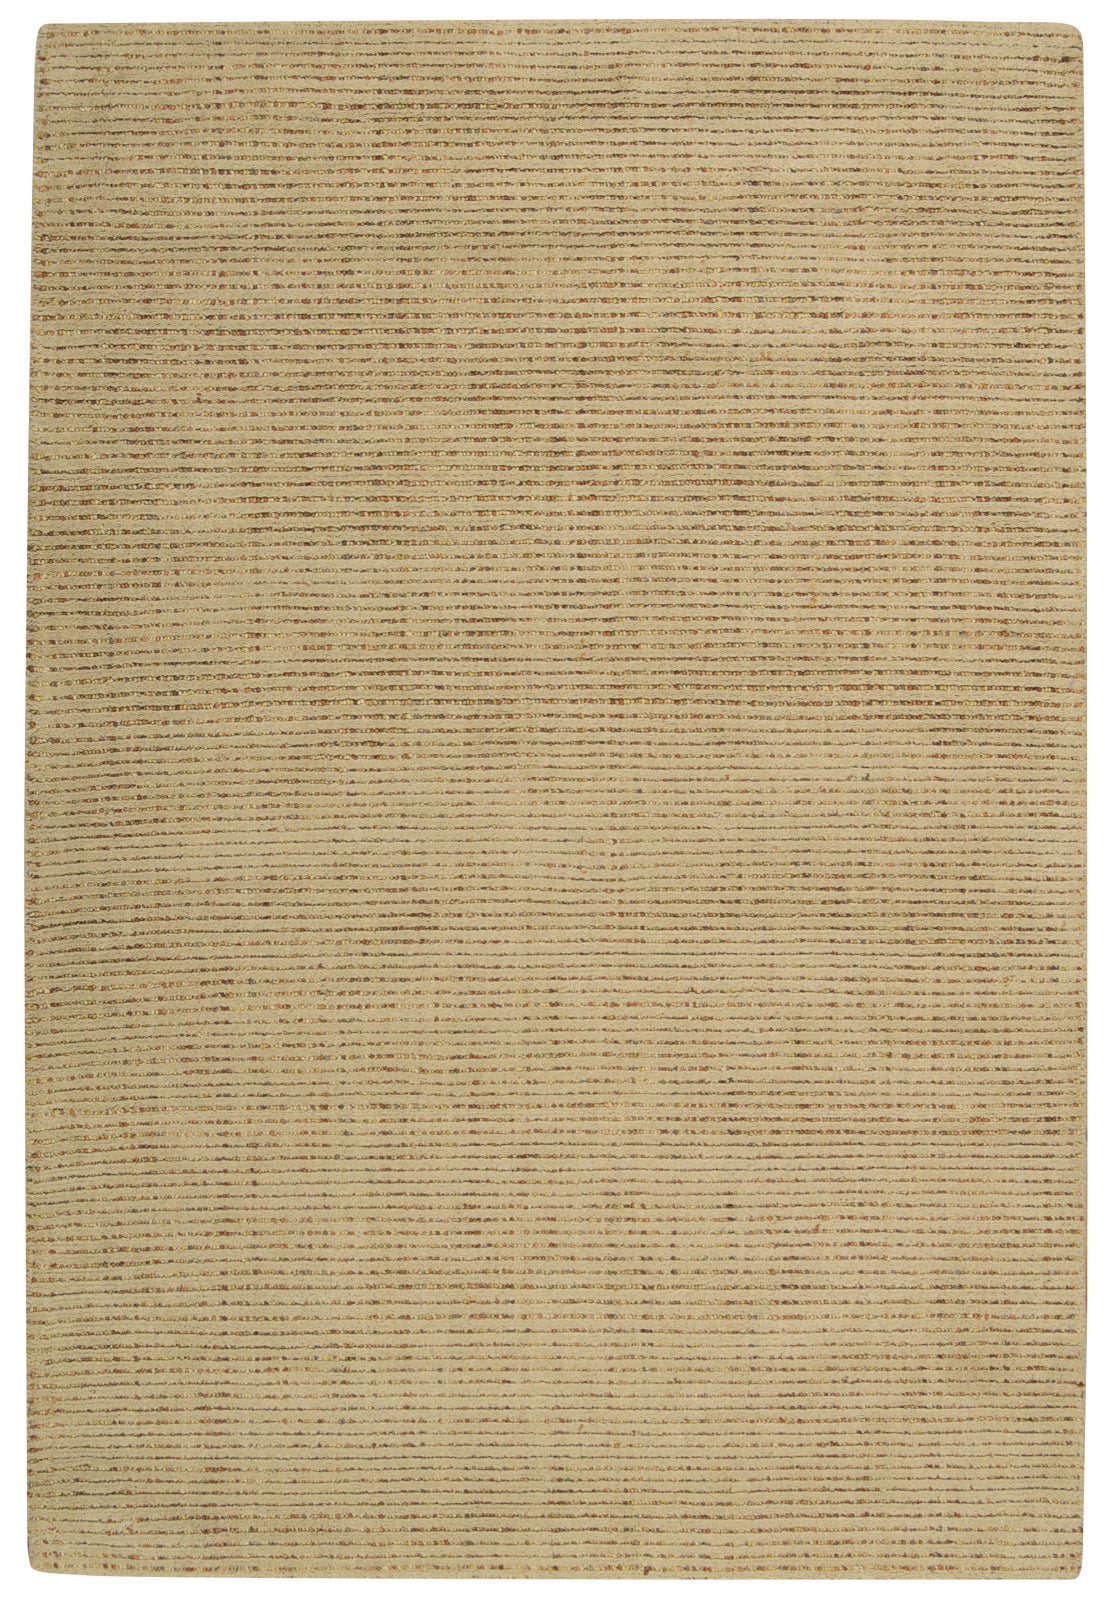 Nourison Intermix INT03 Wheat Area Rug by Barclay Butera main image